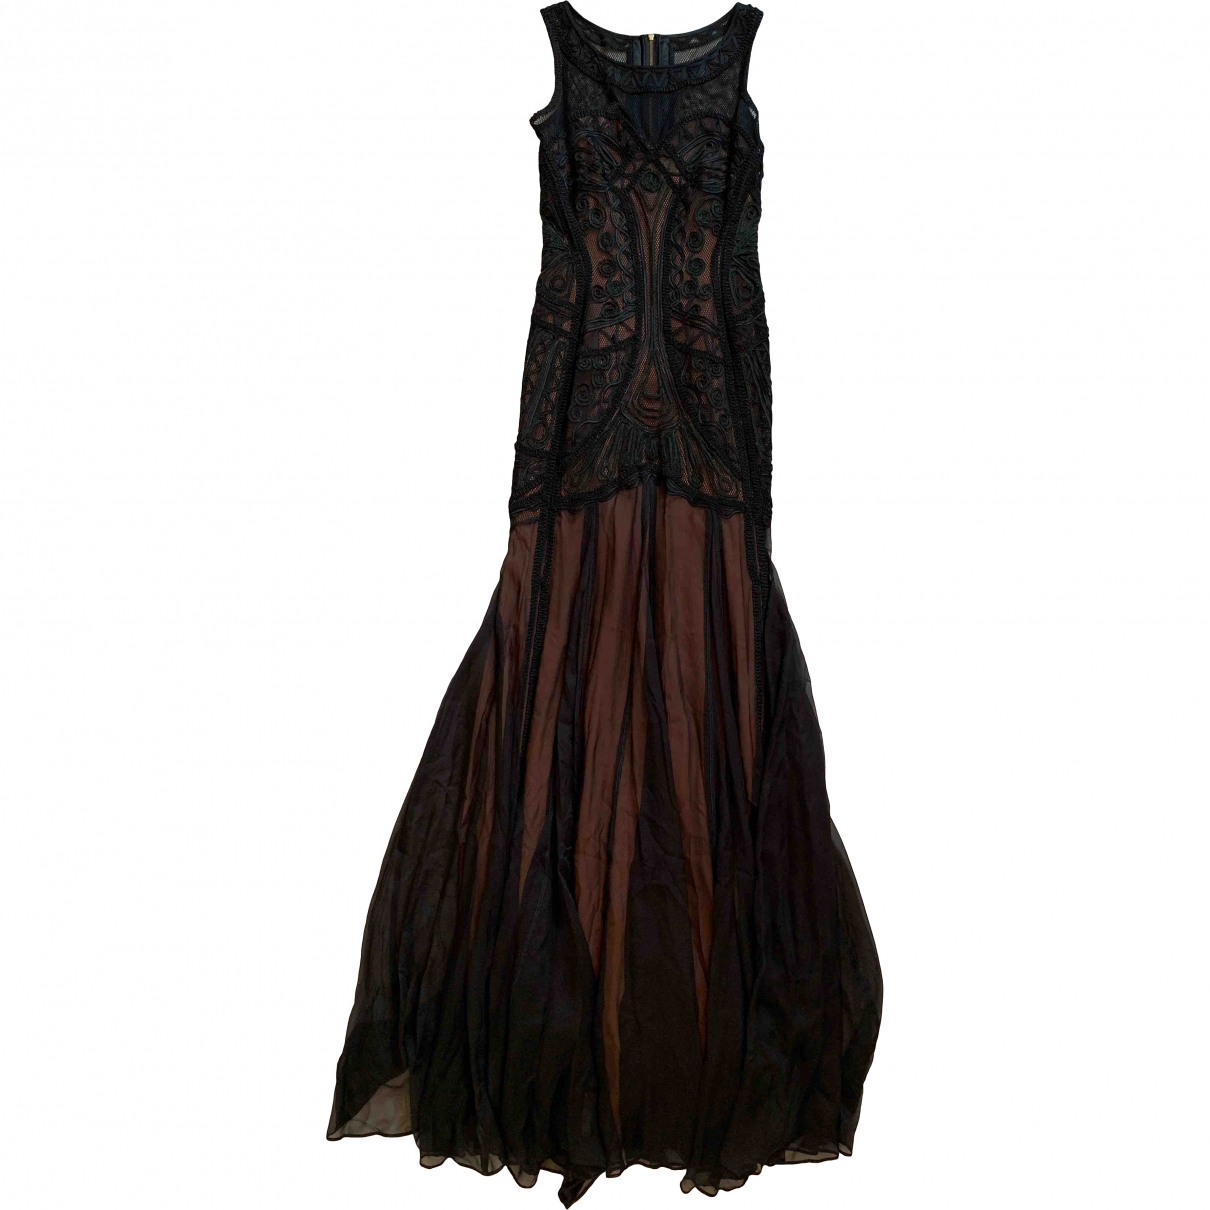 Temperley London \N Black Silk dress for Women 8 UK